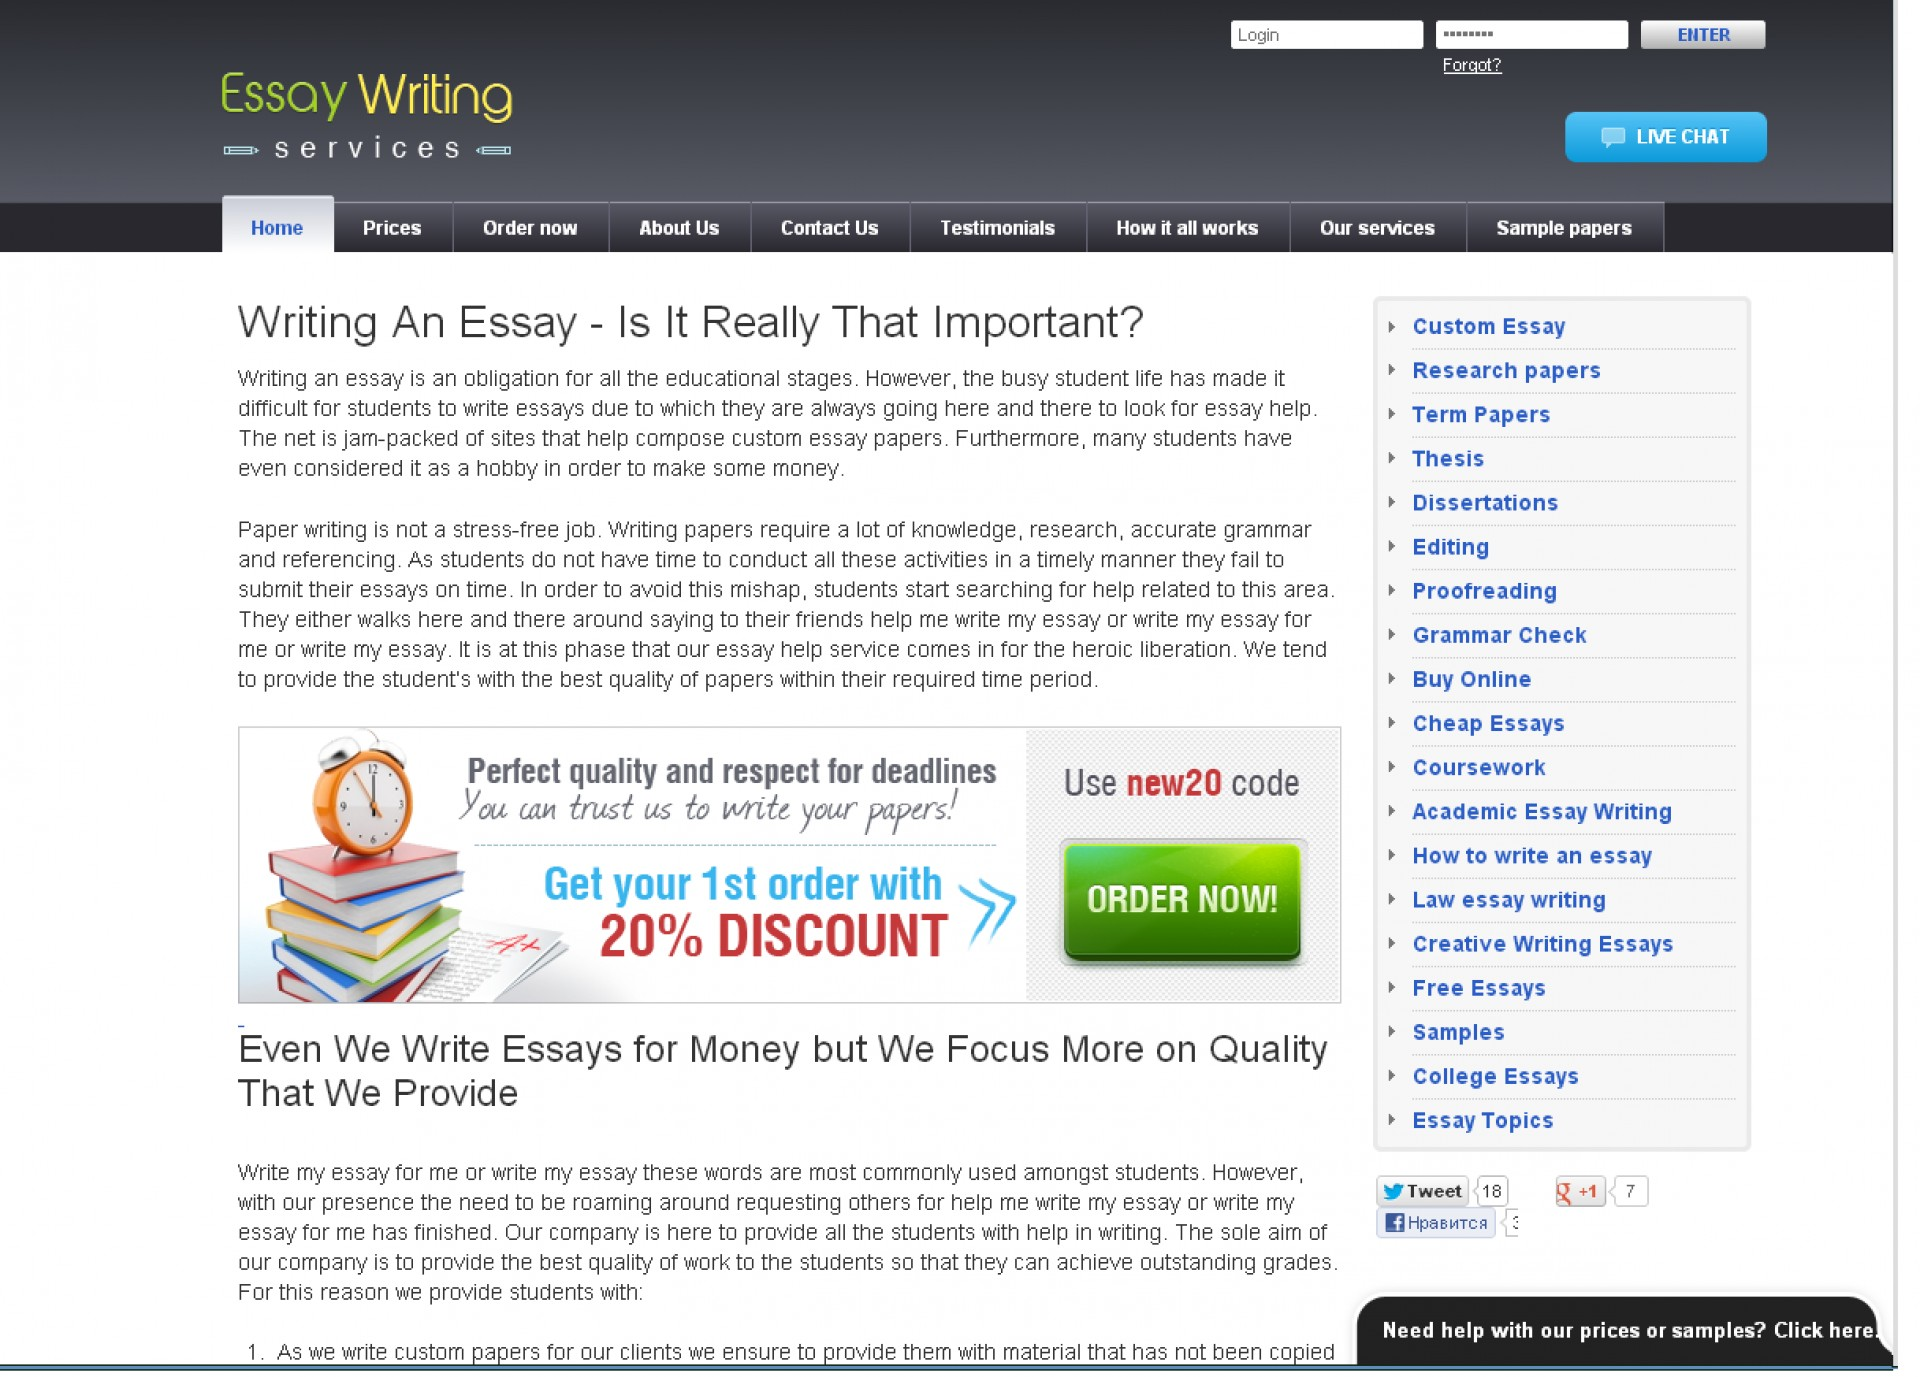 018 Essay Example Writing Services Net Review Pro Outstanding Reviews Writer 1920